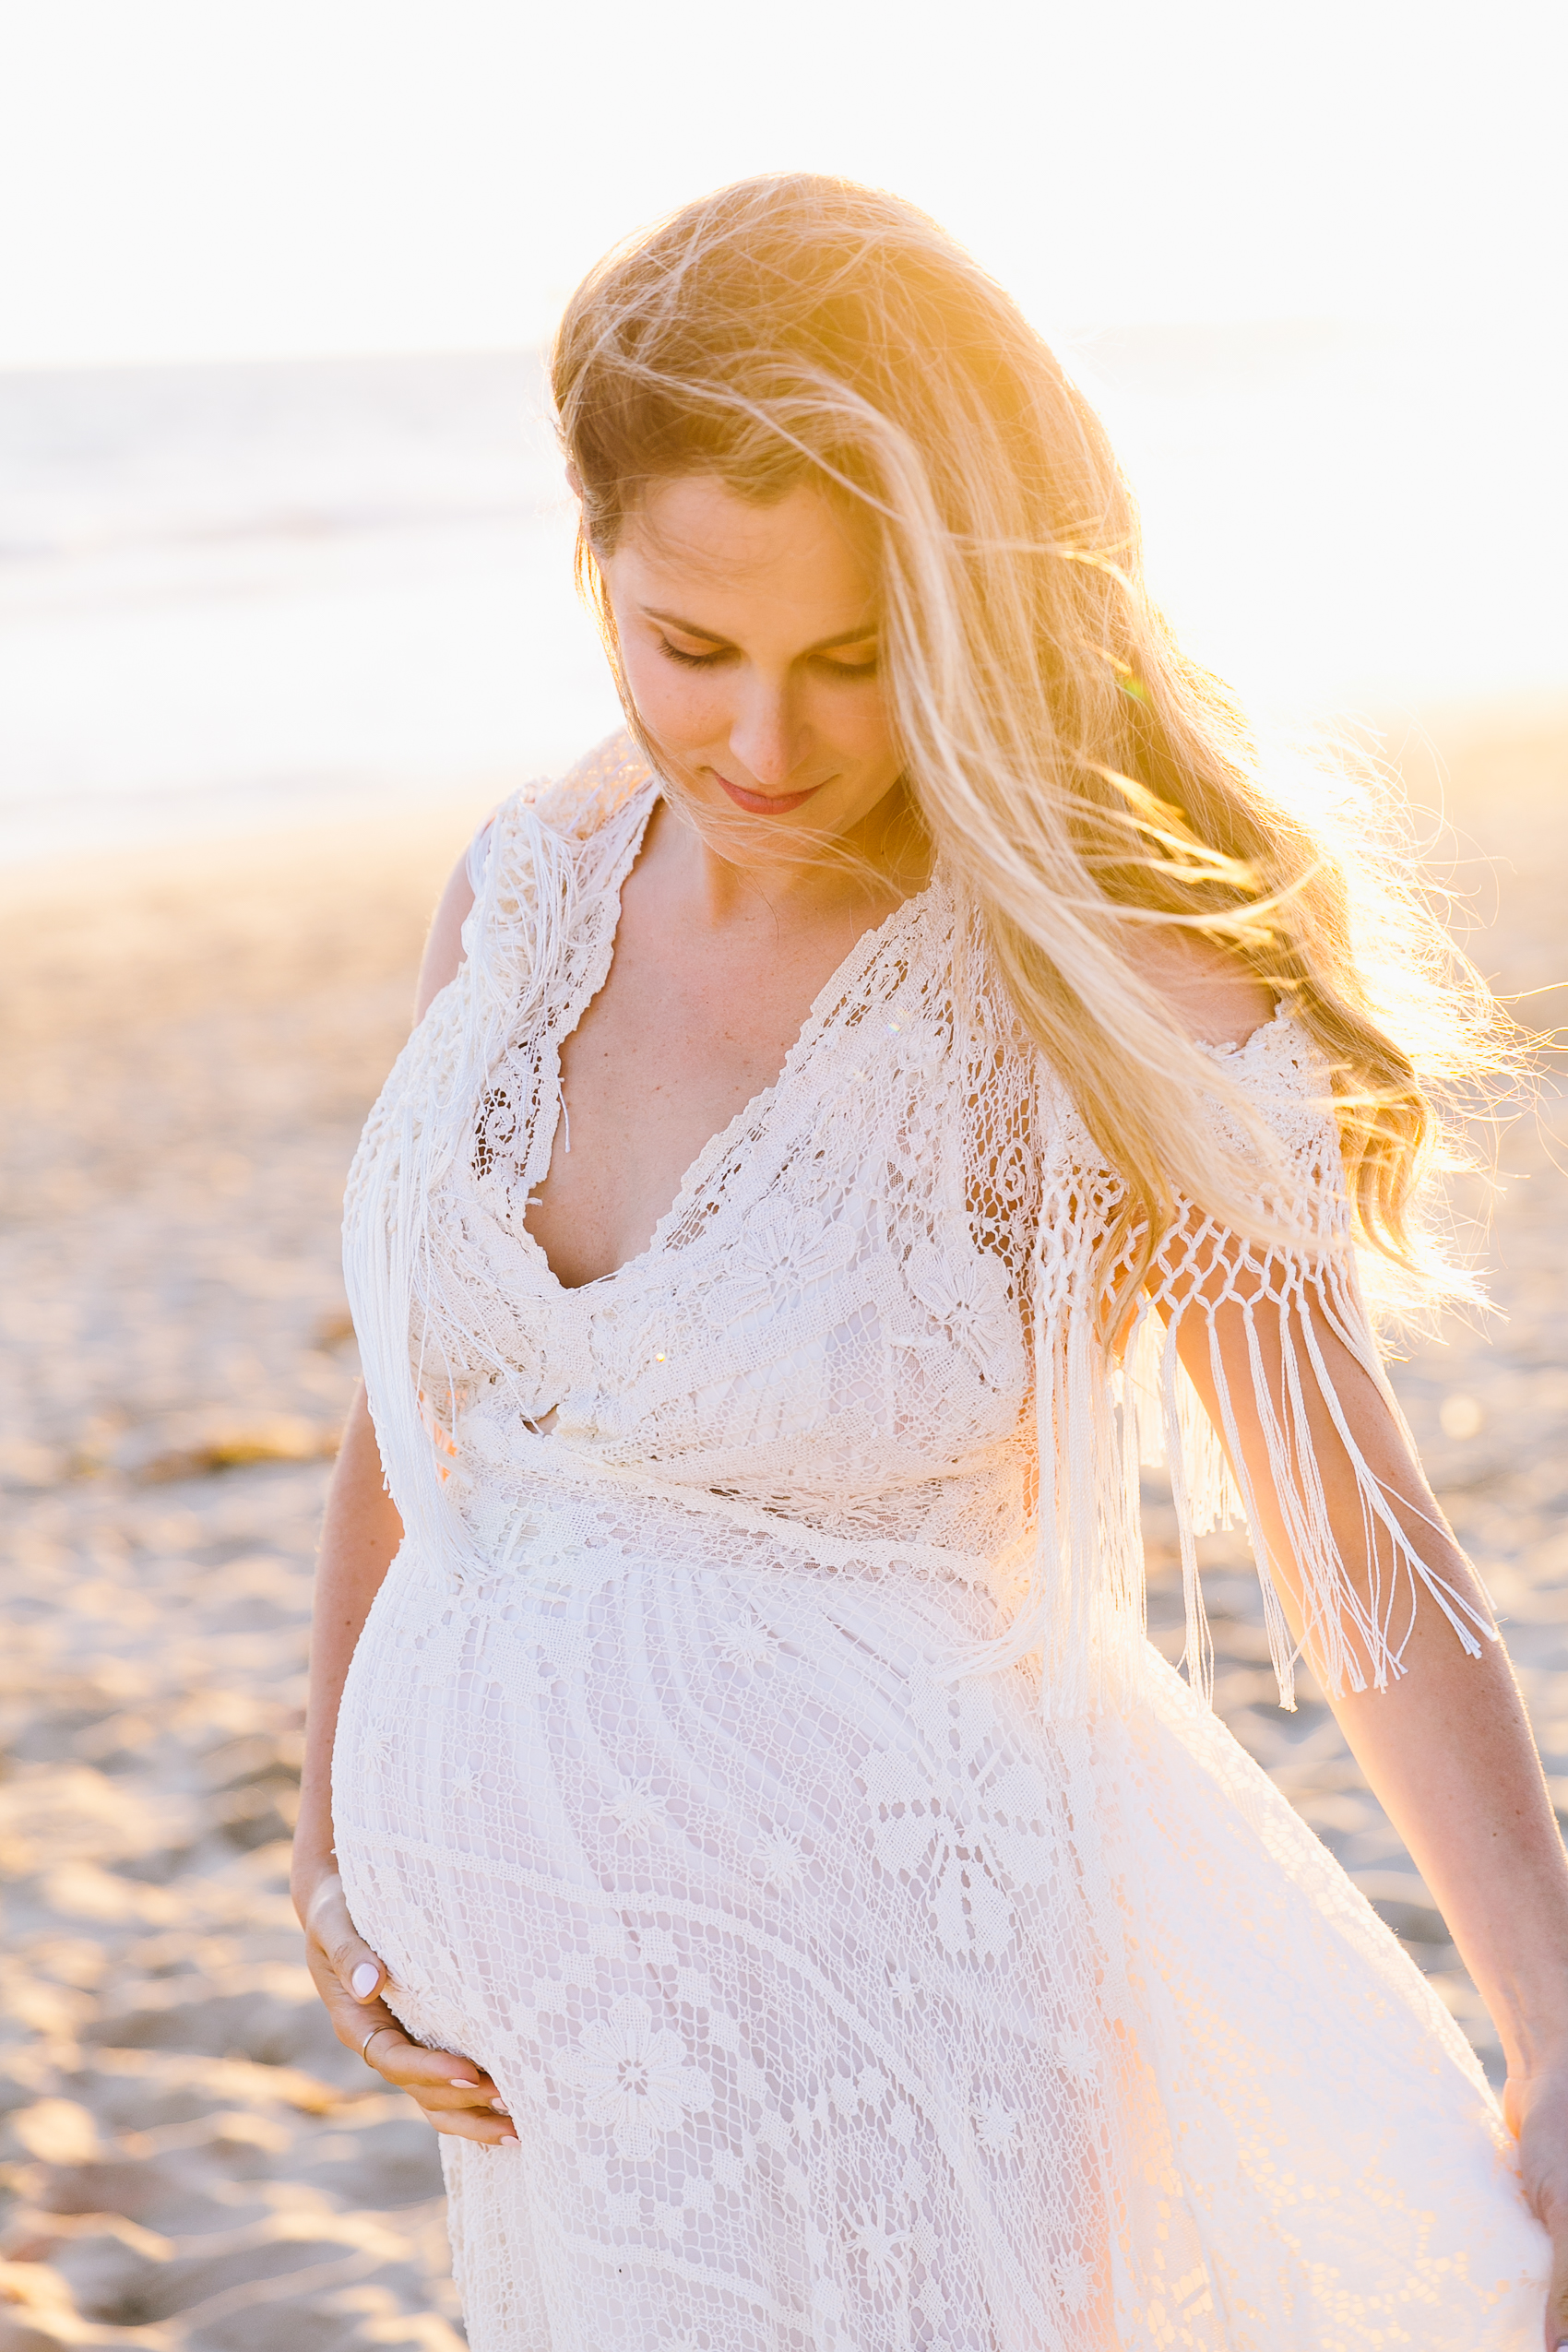 Los_Angeles_Family_Photographer_Maternity_Photos_Baby_Pregnancy_Venice_Beach_Golden_Hour-0894.jpg